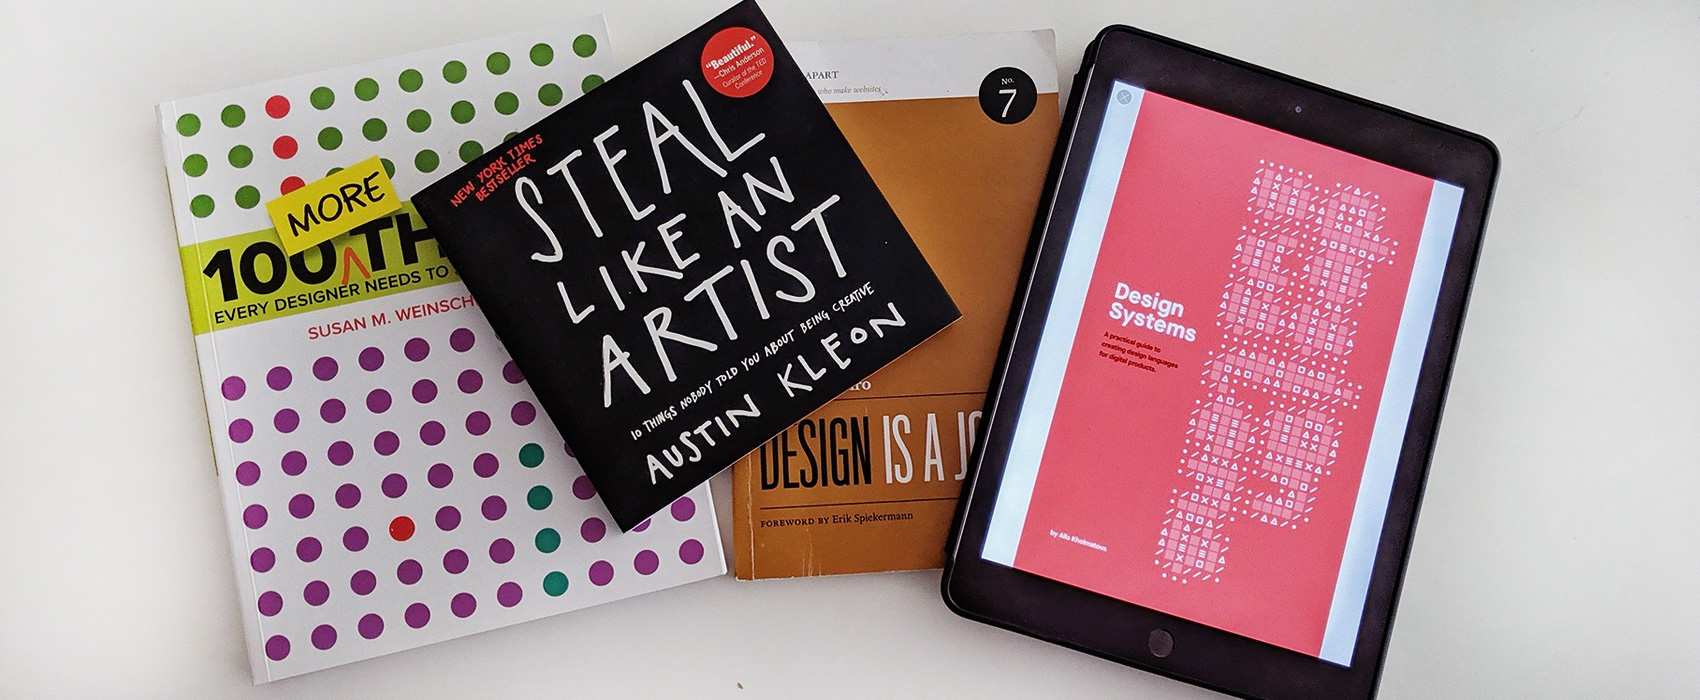 📚 Bibliography – Selected Books on Design, User eXperience, Mobile, Accessibility & more